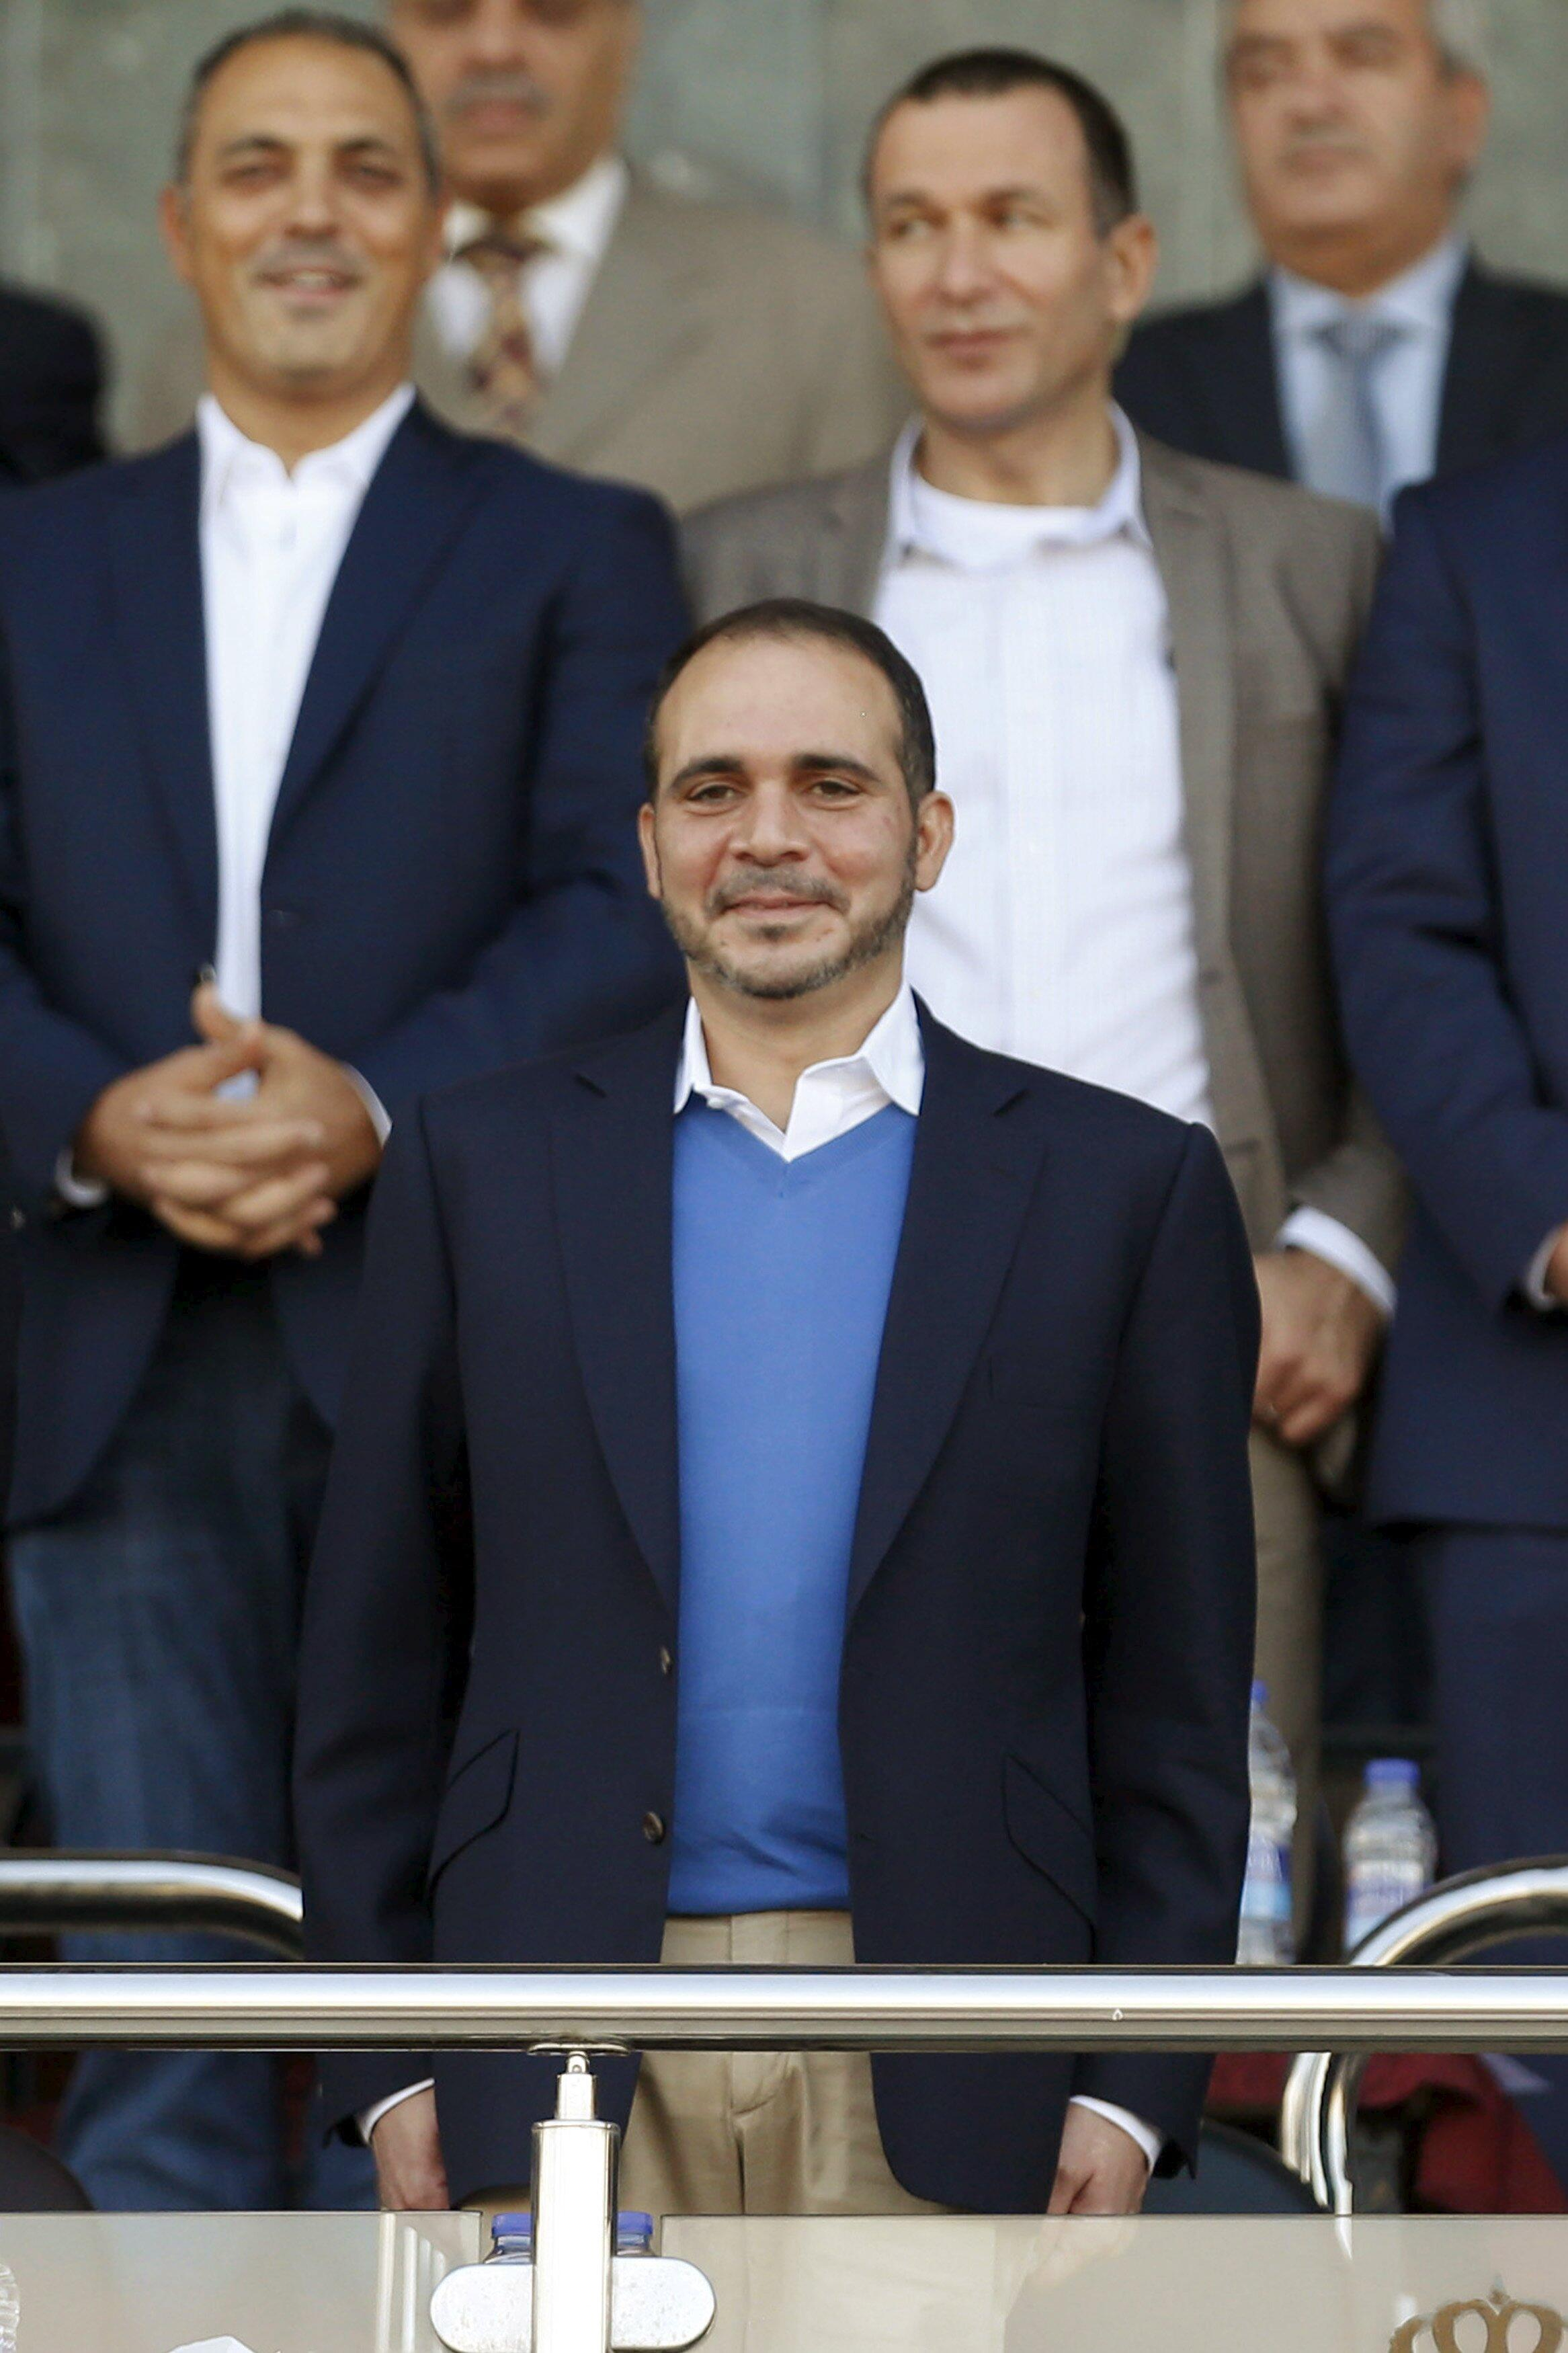 Prince Ali attends the 2018 World Cup qualifying match between Jordan and Australia in Amman, 8 October 2015.